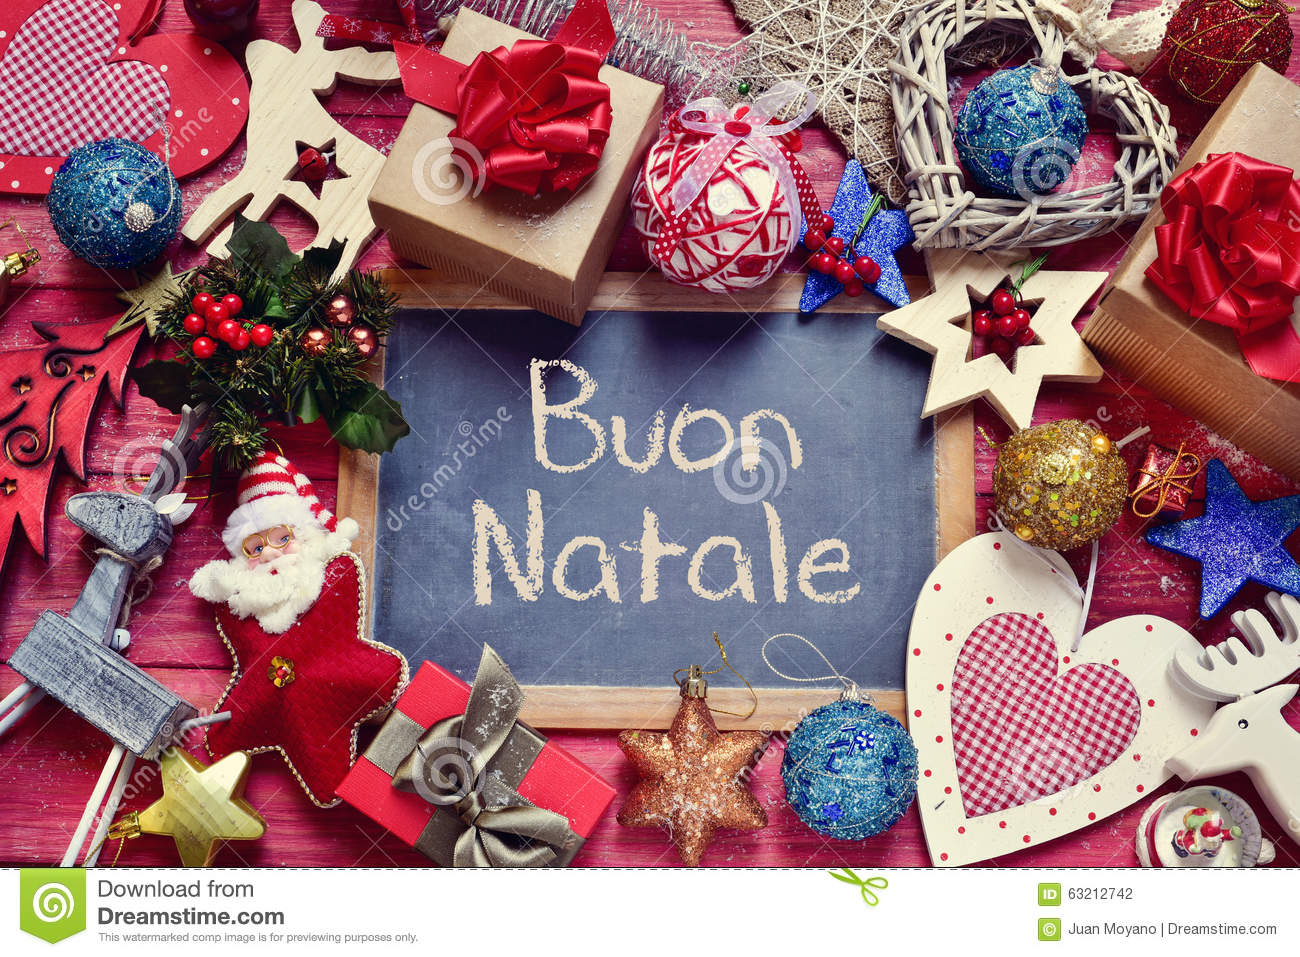 Ornaments and text buon natale merry christmas in italian stock photo image of cozy - Kisseo weihnachtskarten ...